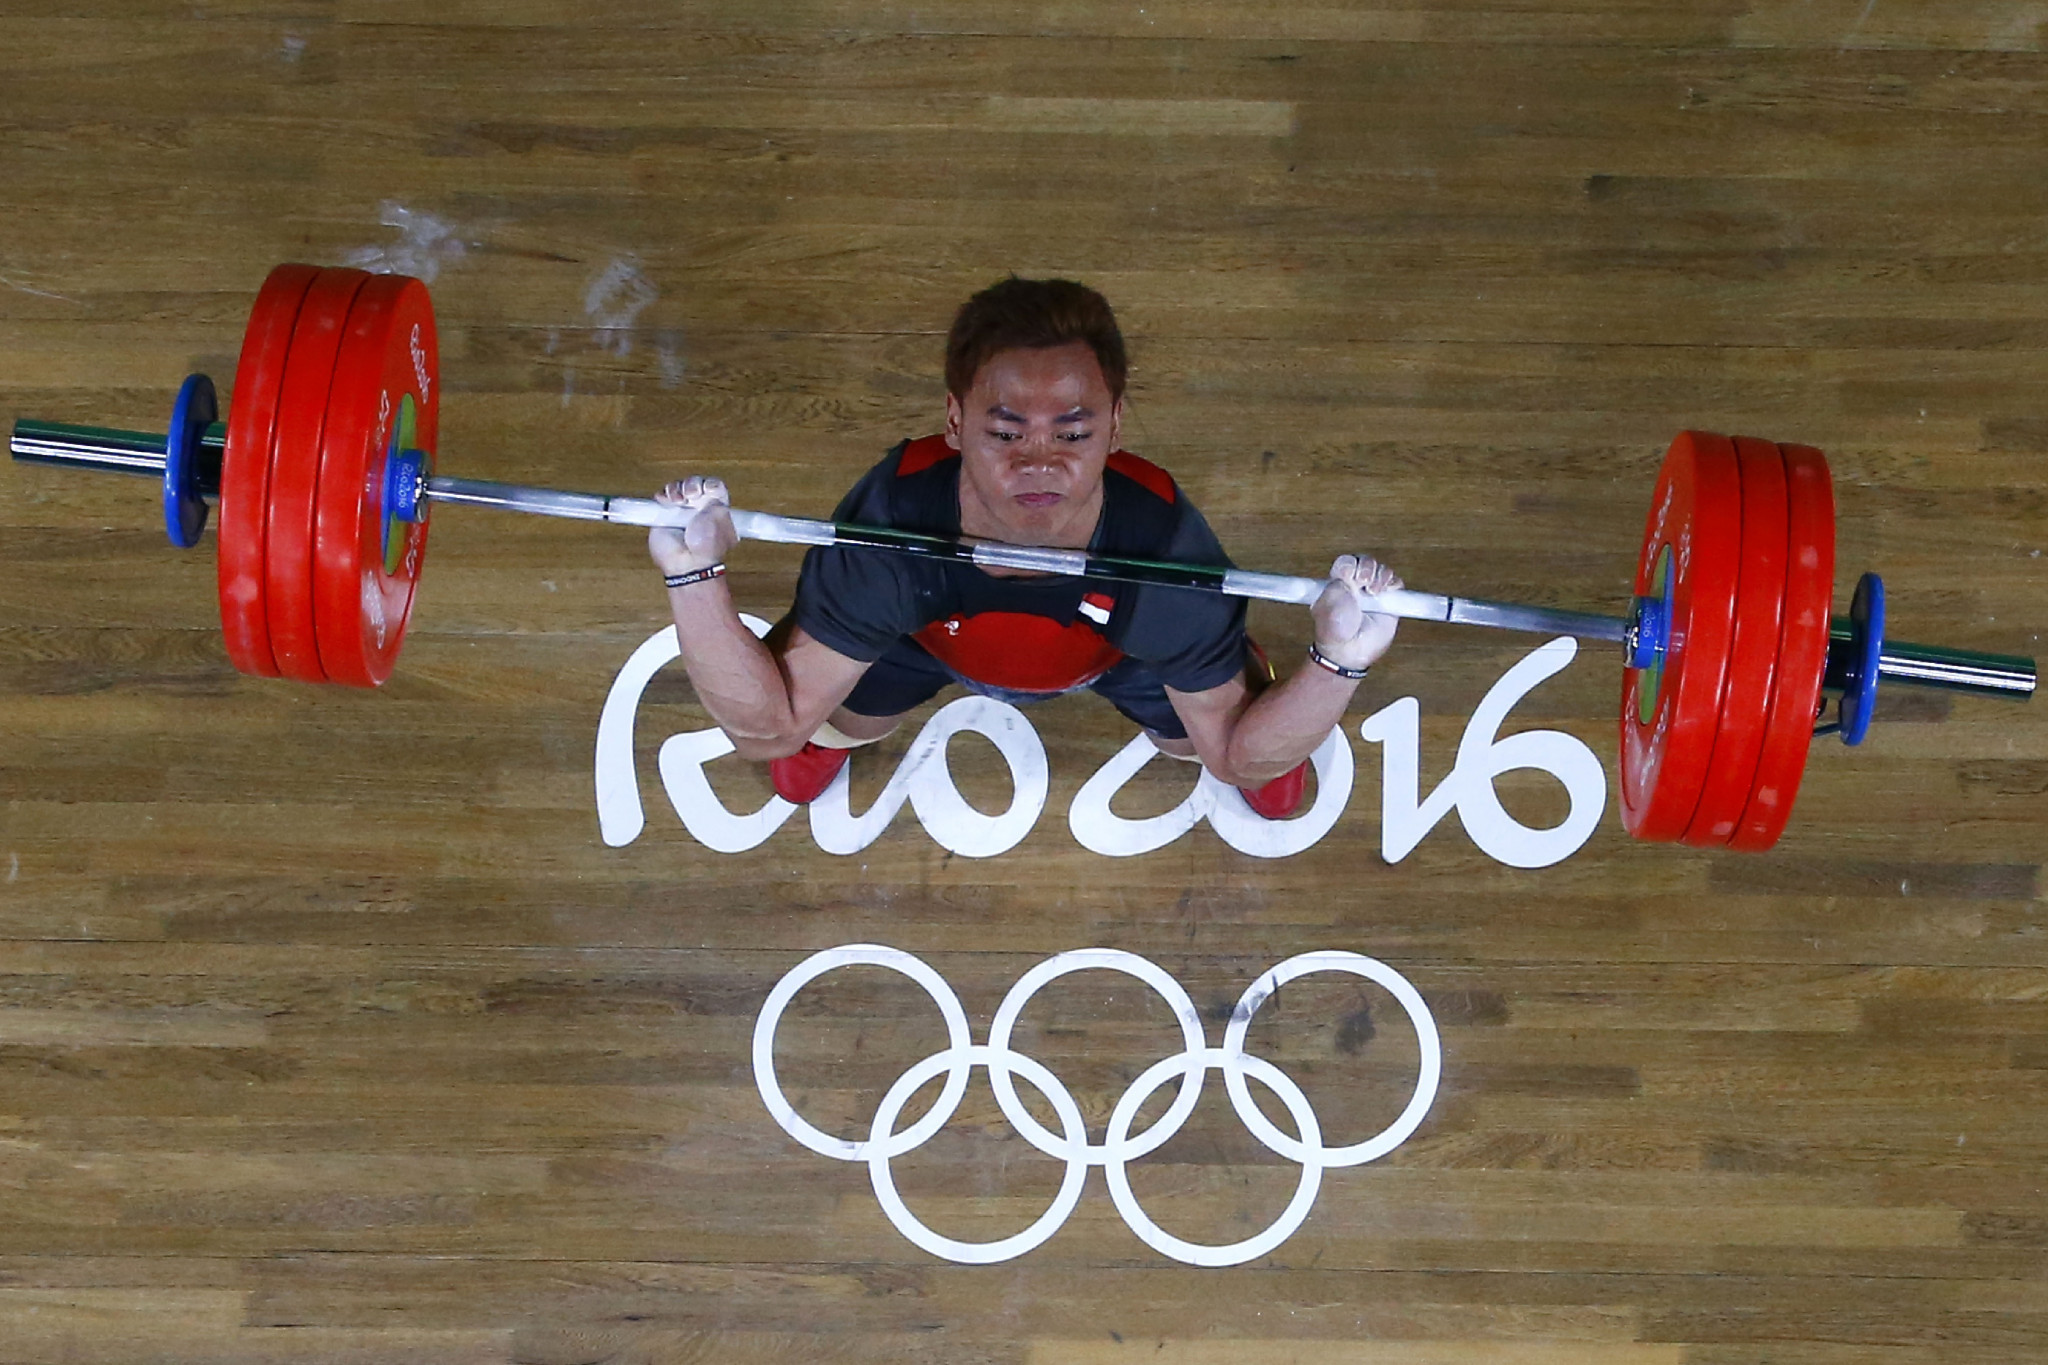 OCA agree to include additional men's weightlifting division at 2018 Asian Games